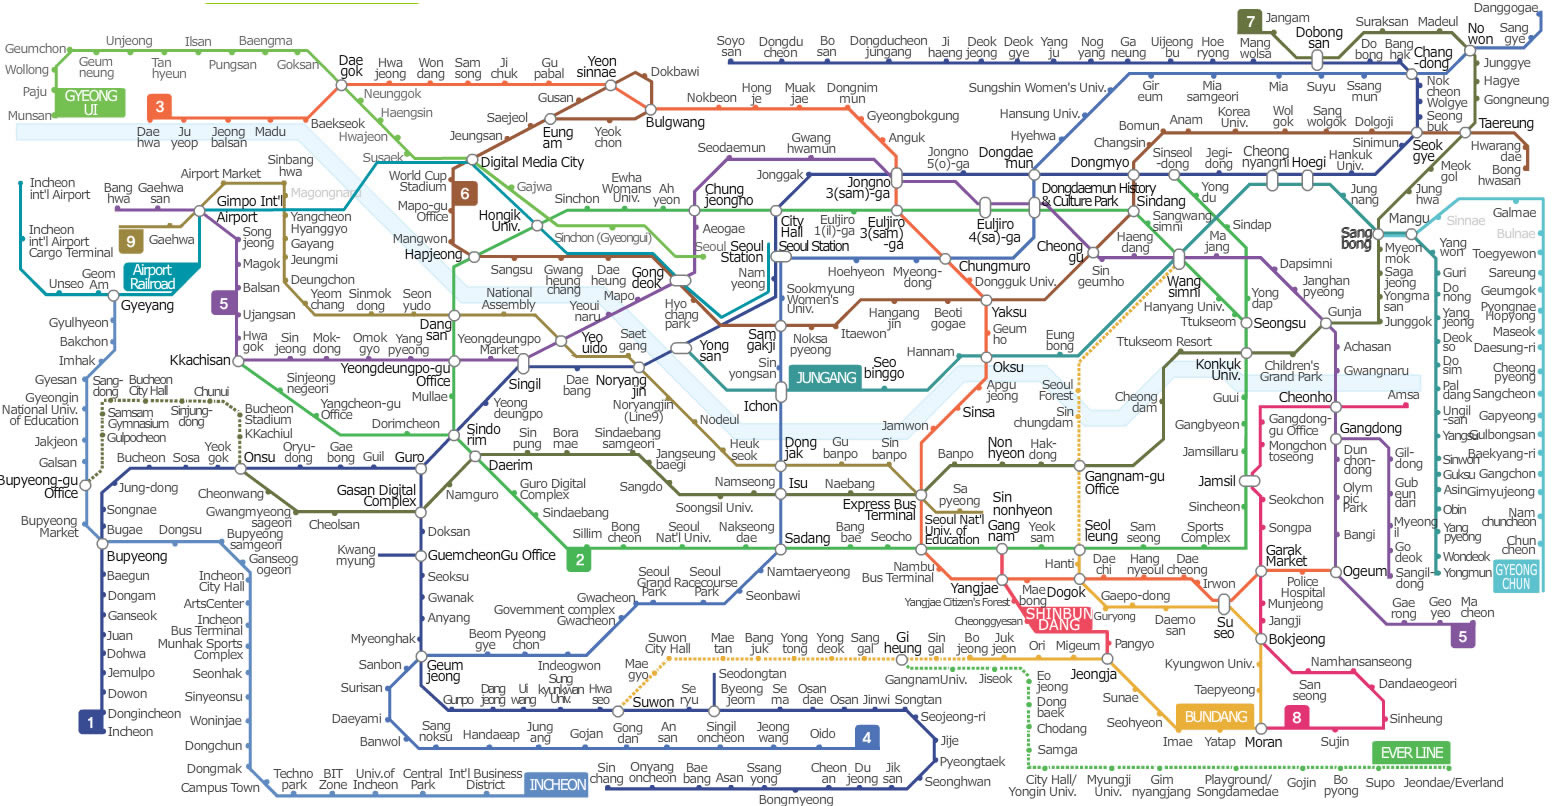 Seoul Subway Map 2015.Seoul Subway Metro Map English Version Updated